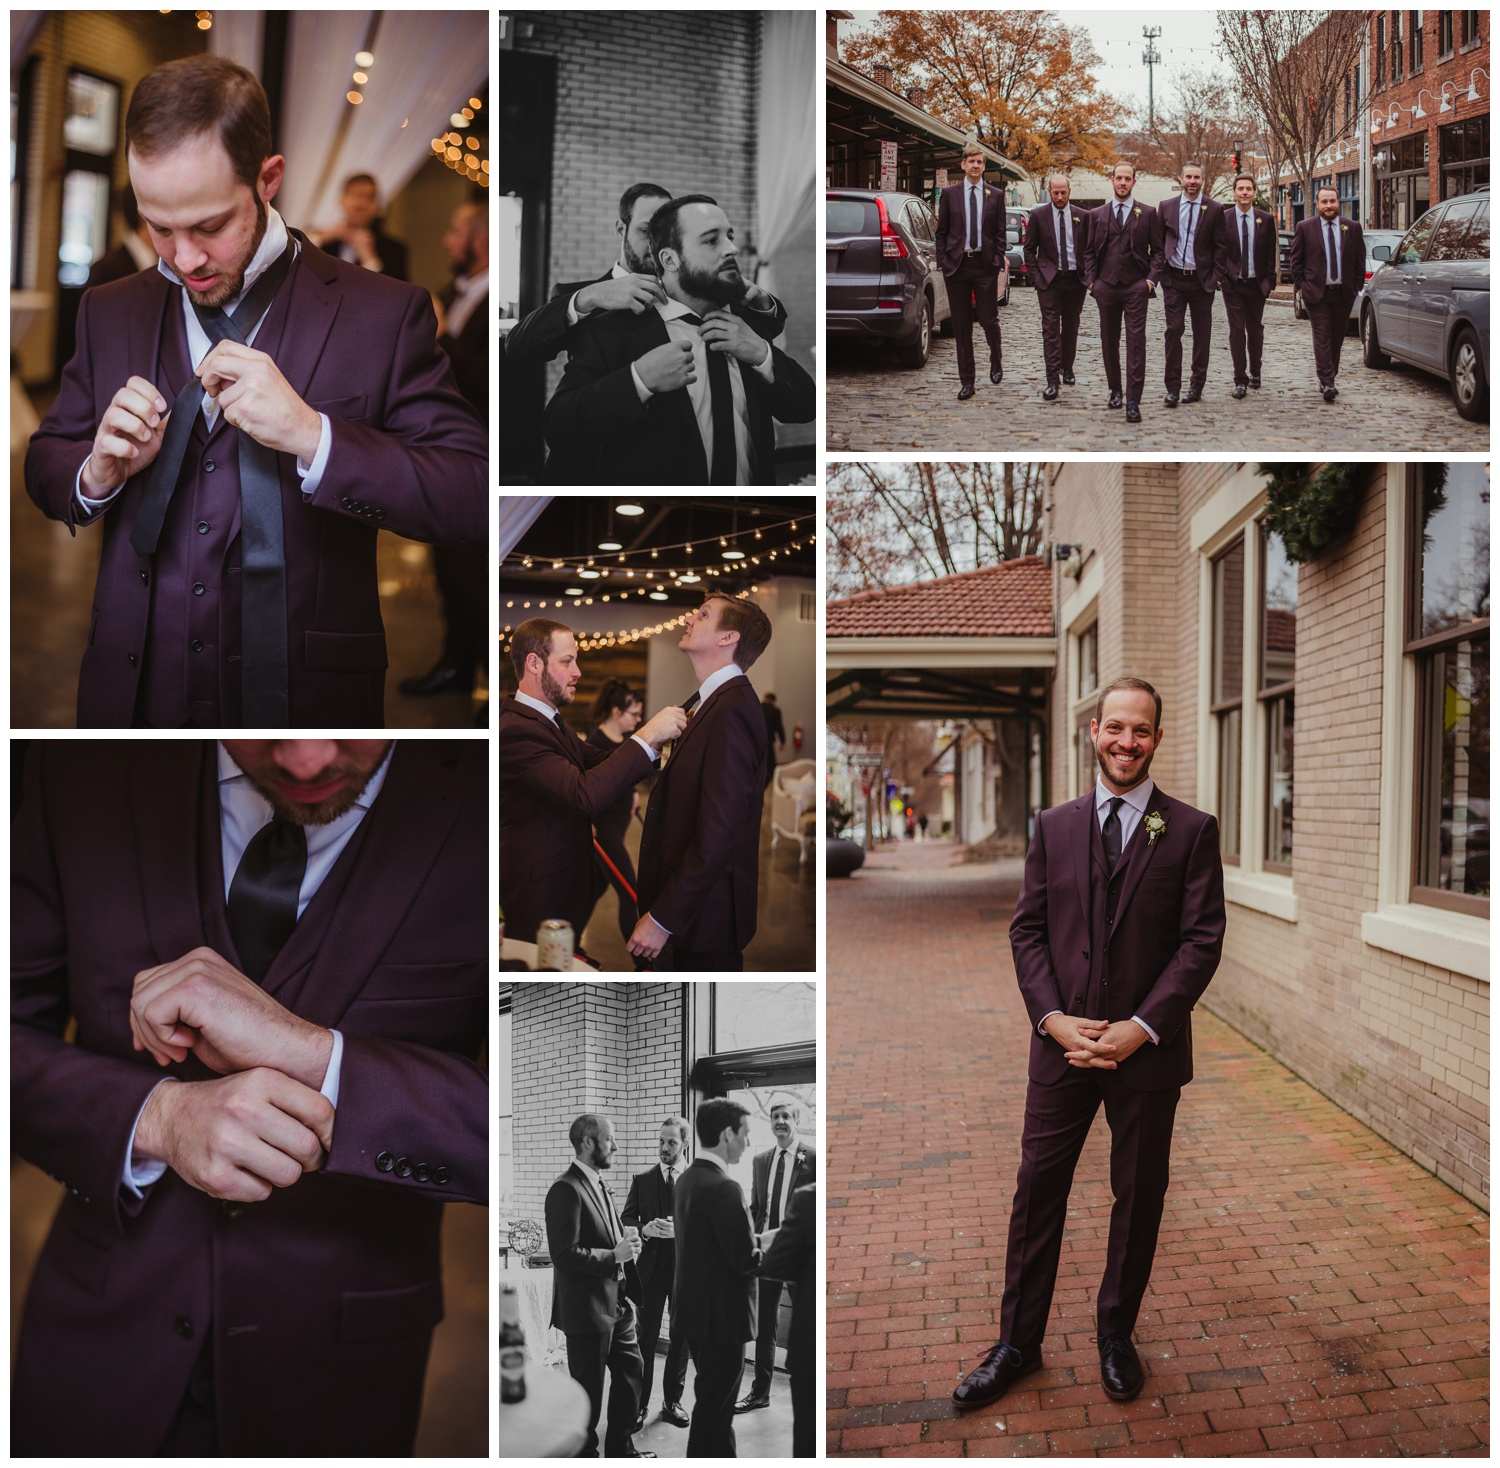 The groom got ready with his groomsmen before his wedding ceremony in downtown Raleigh, photos by Rose Trail Images.